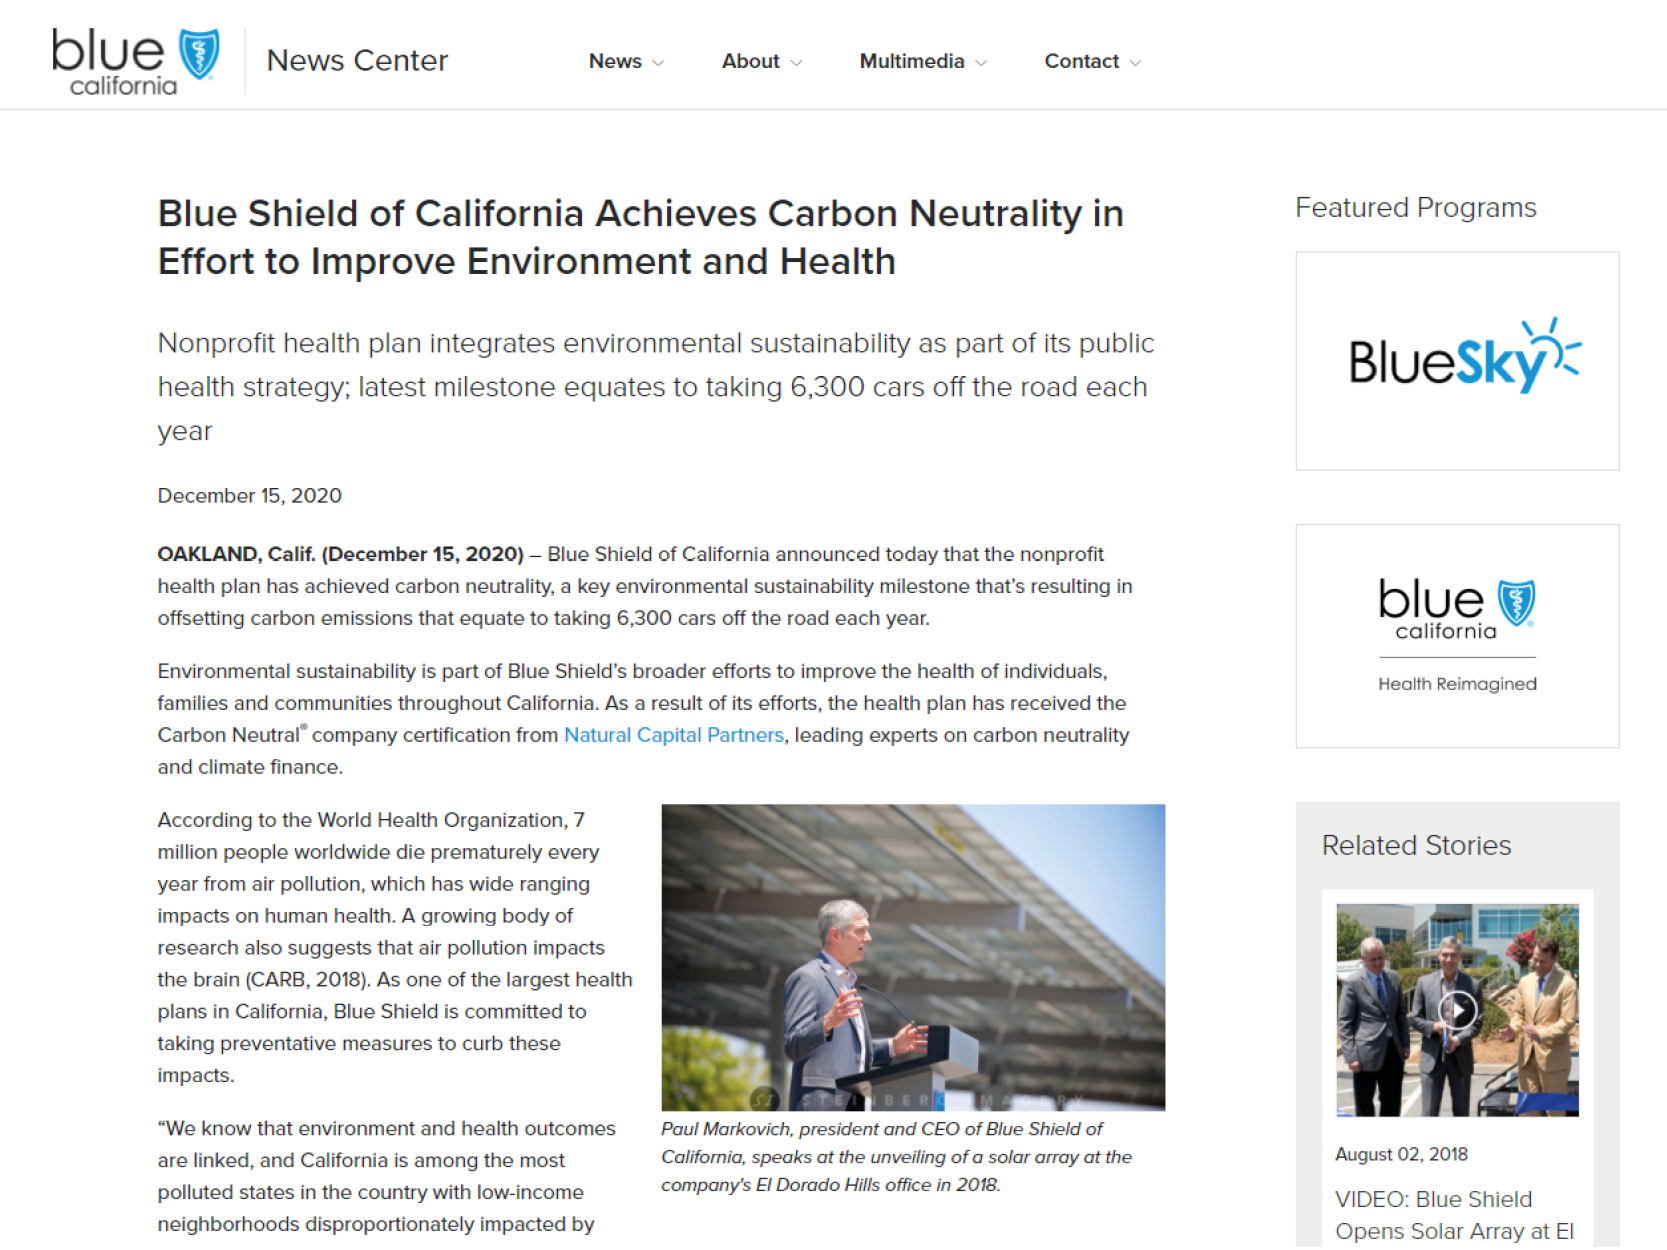 Blue Shield of California Achieves Carbon Neutrality in Effort to Improve Environment and Health